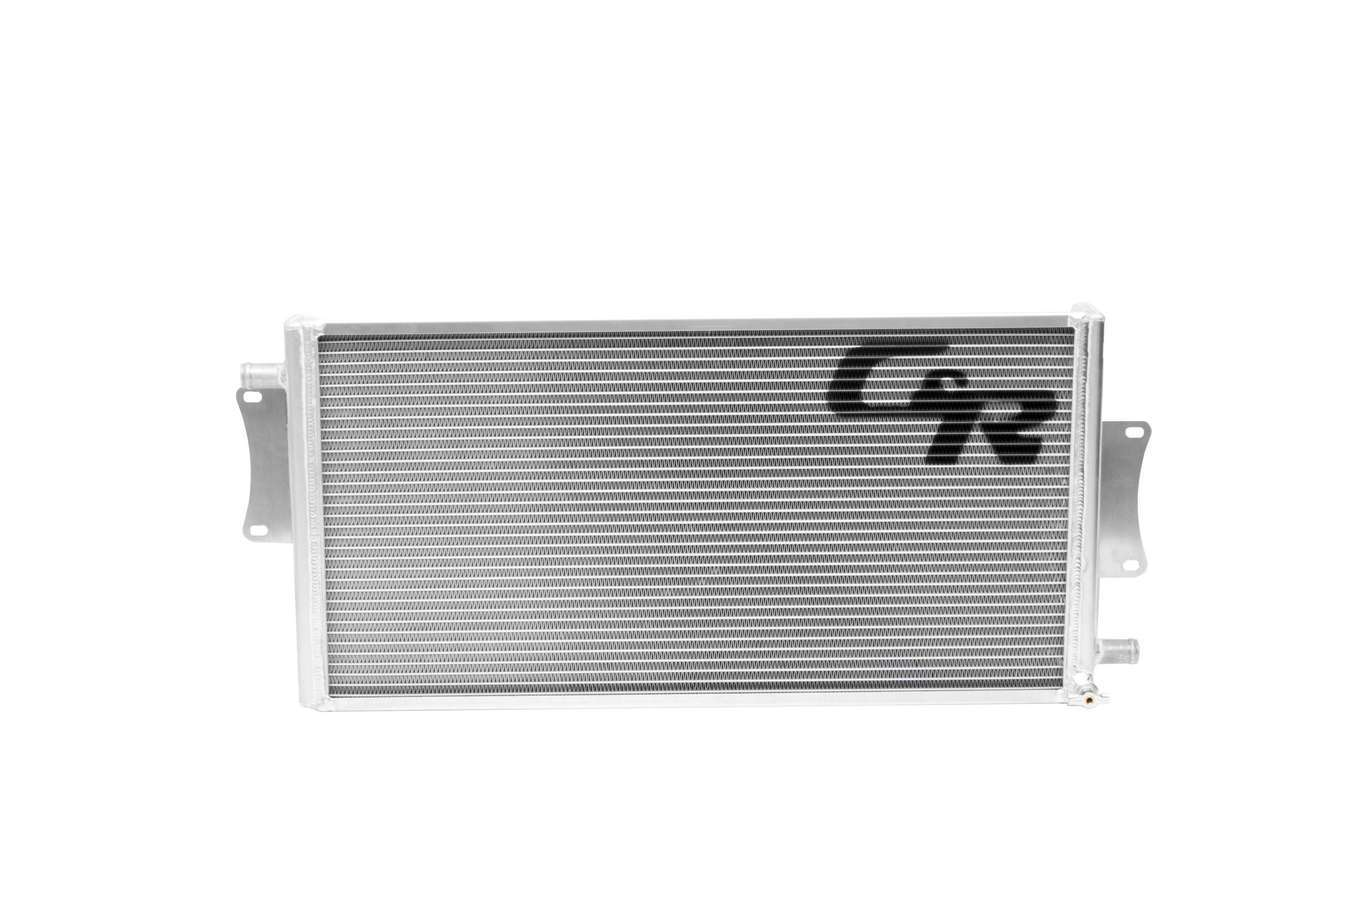 C & R Racing Radiators 56-00013 Heat Exchanger, Intercooler, 42 mm Core, Aluminum, Natural, Automatic Transmission, ZL1, Chevy Camaro 2013, Each